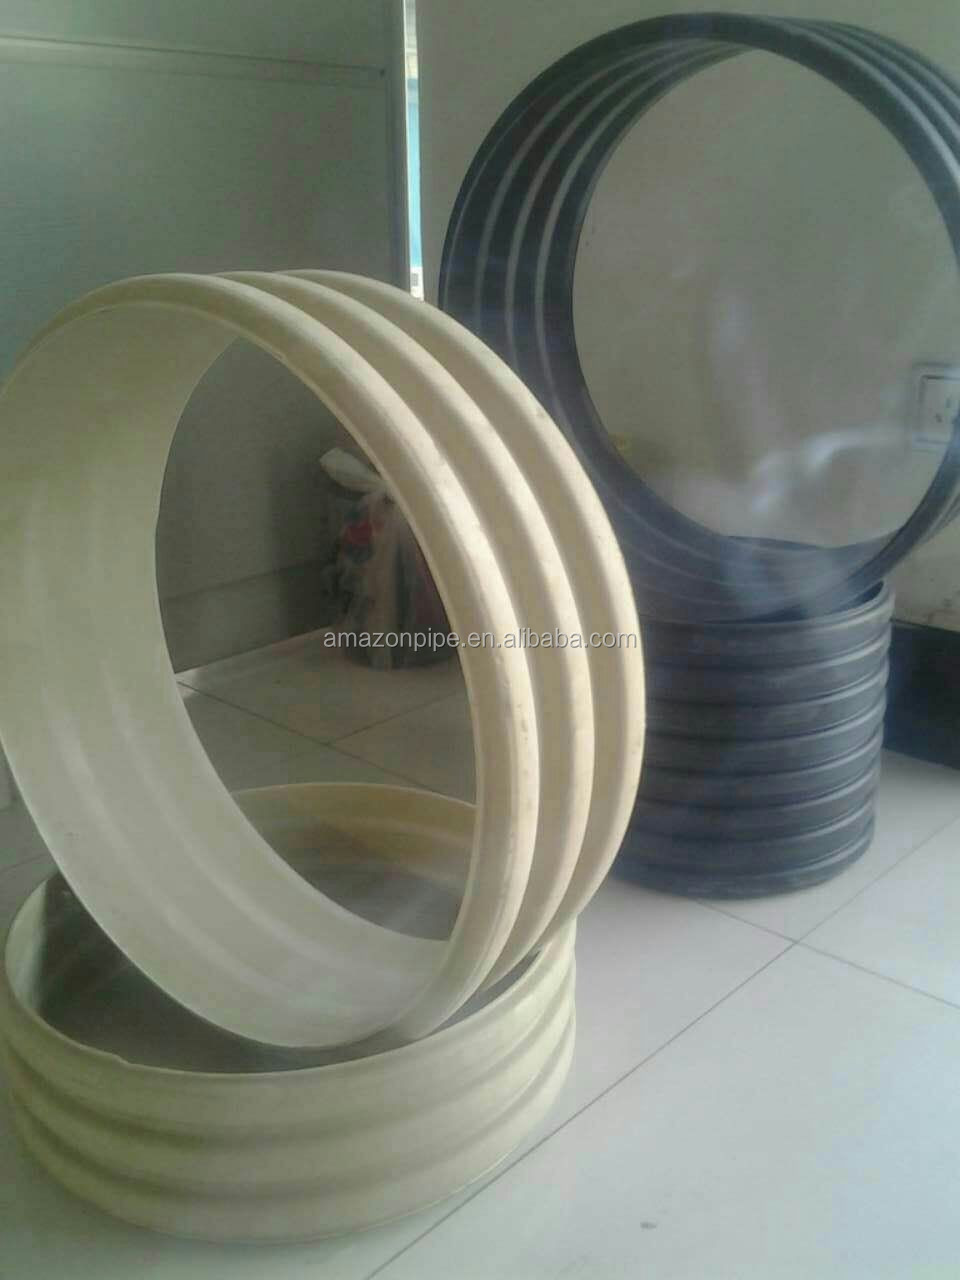 DN500 SN8 PVC white black corrugated pipe